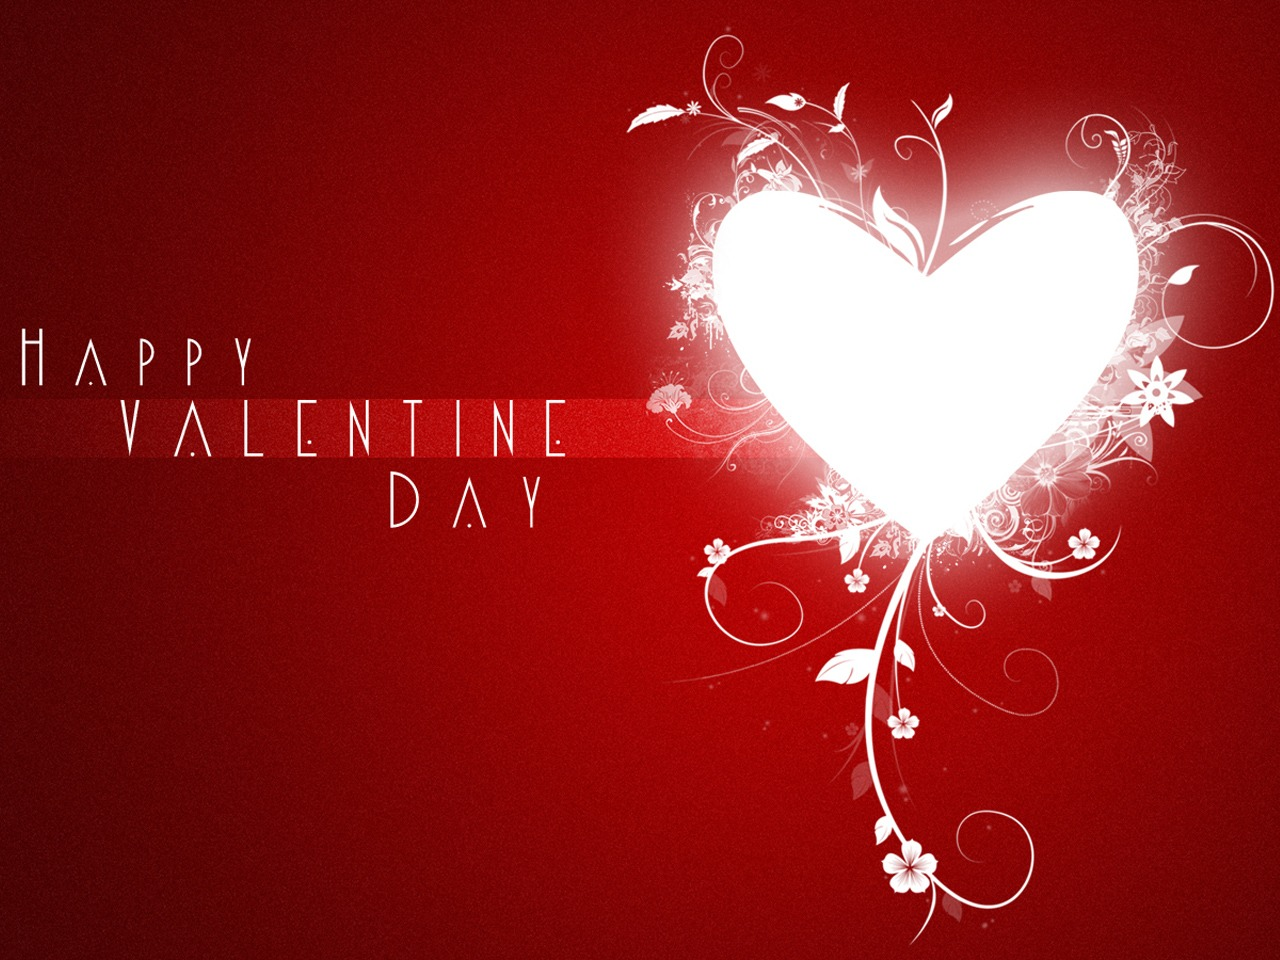 Valentine's Day Wallpapers: Valentine Wallpapers For Facebook